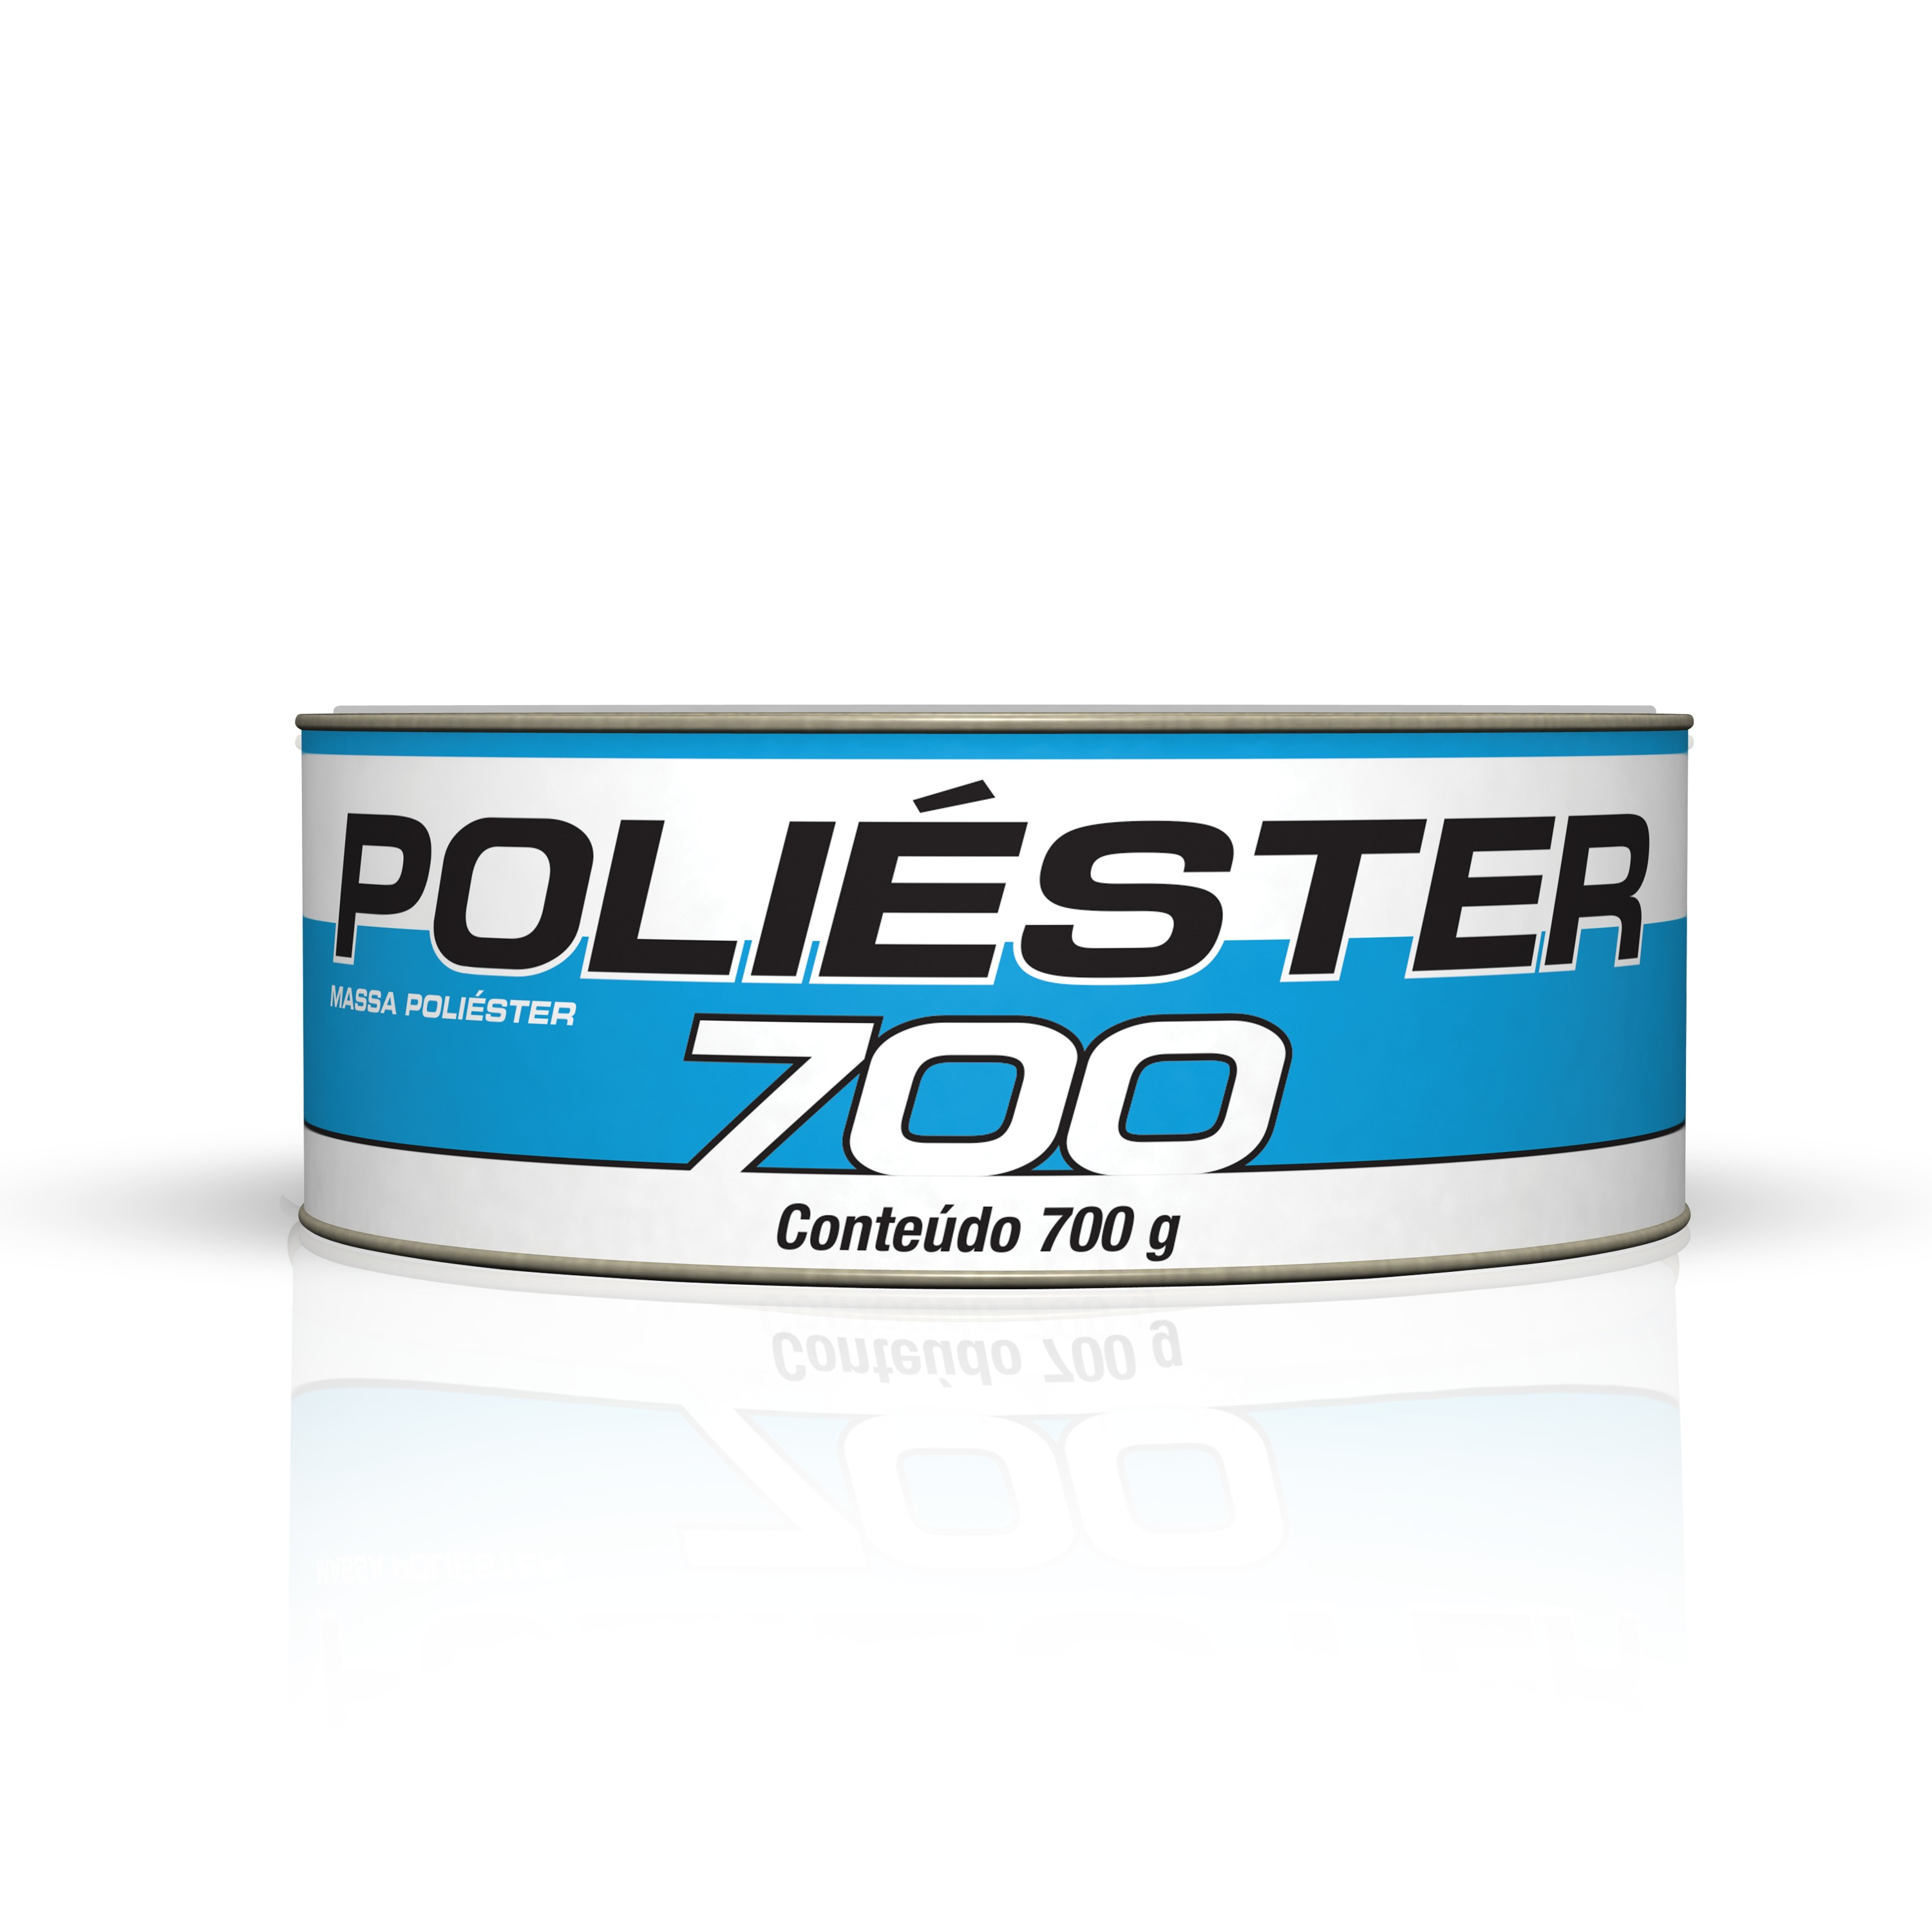 Polyester 700